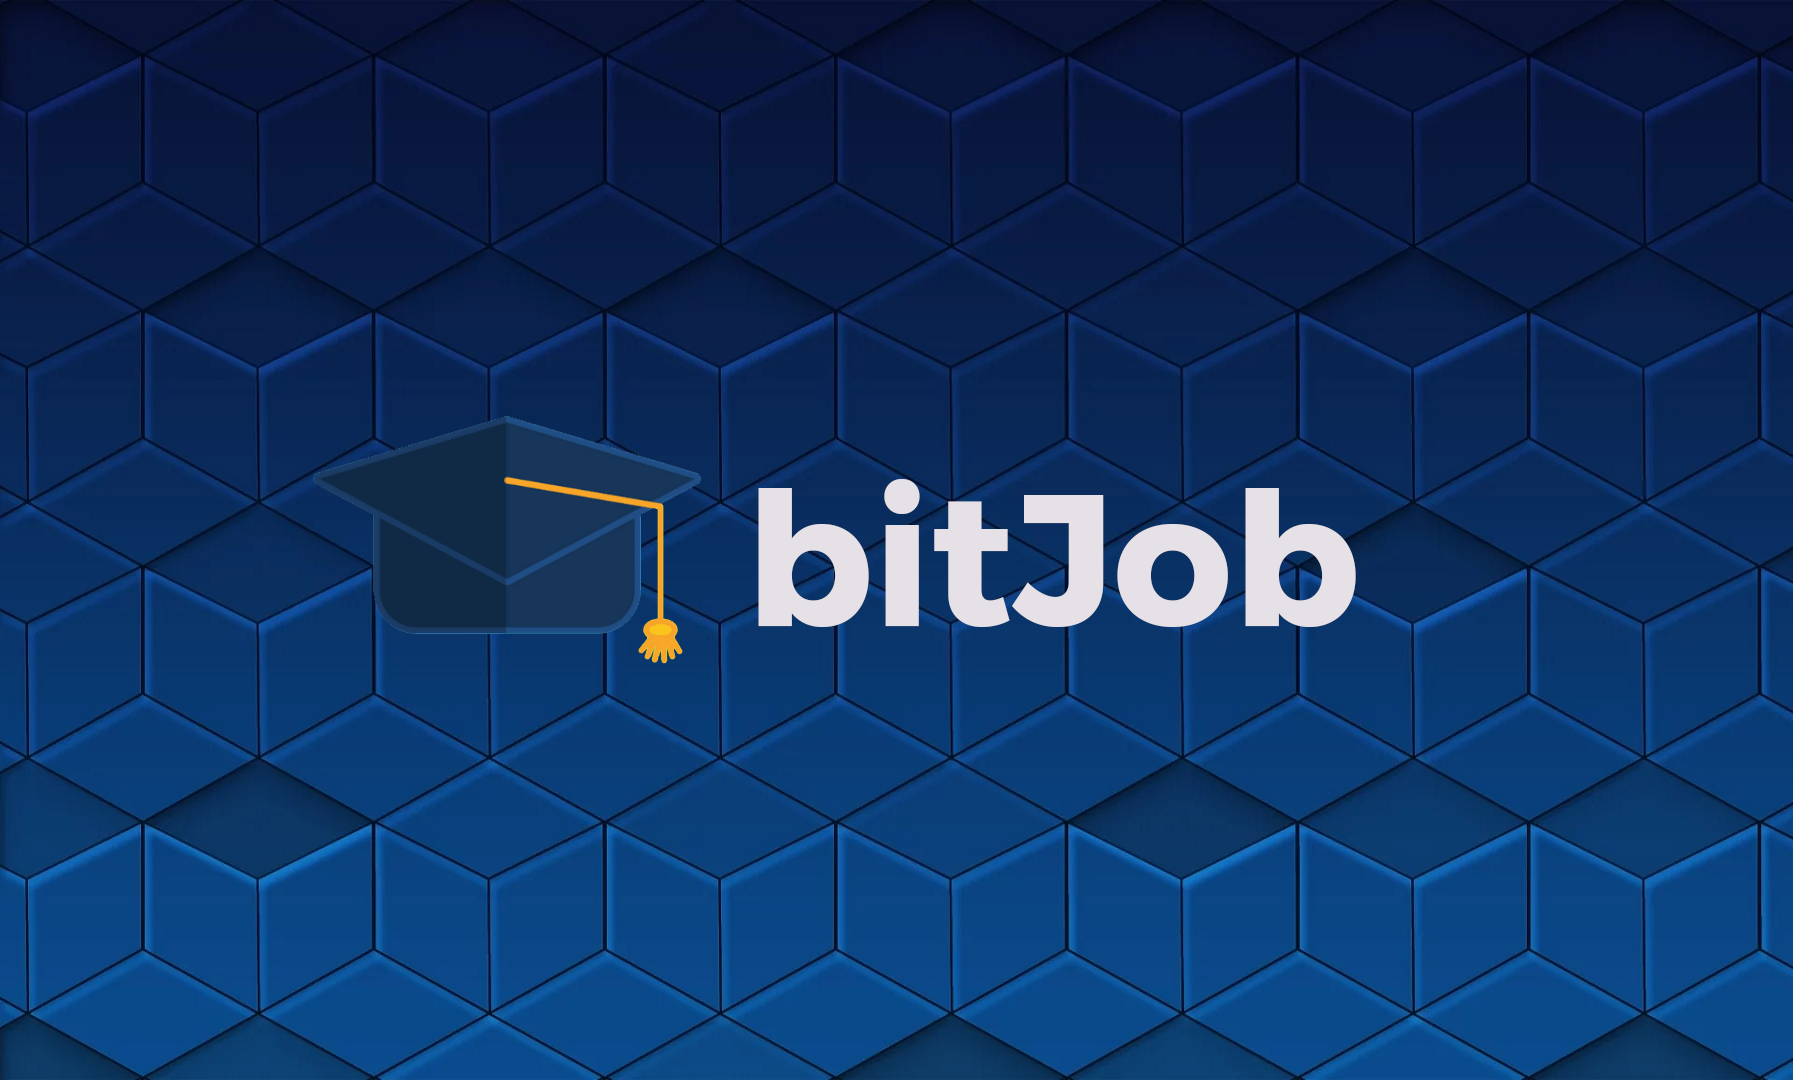 Background-bitJob